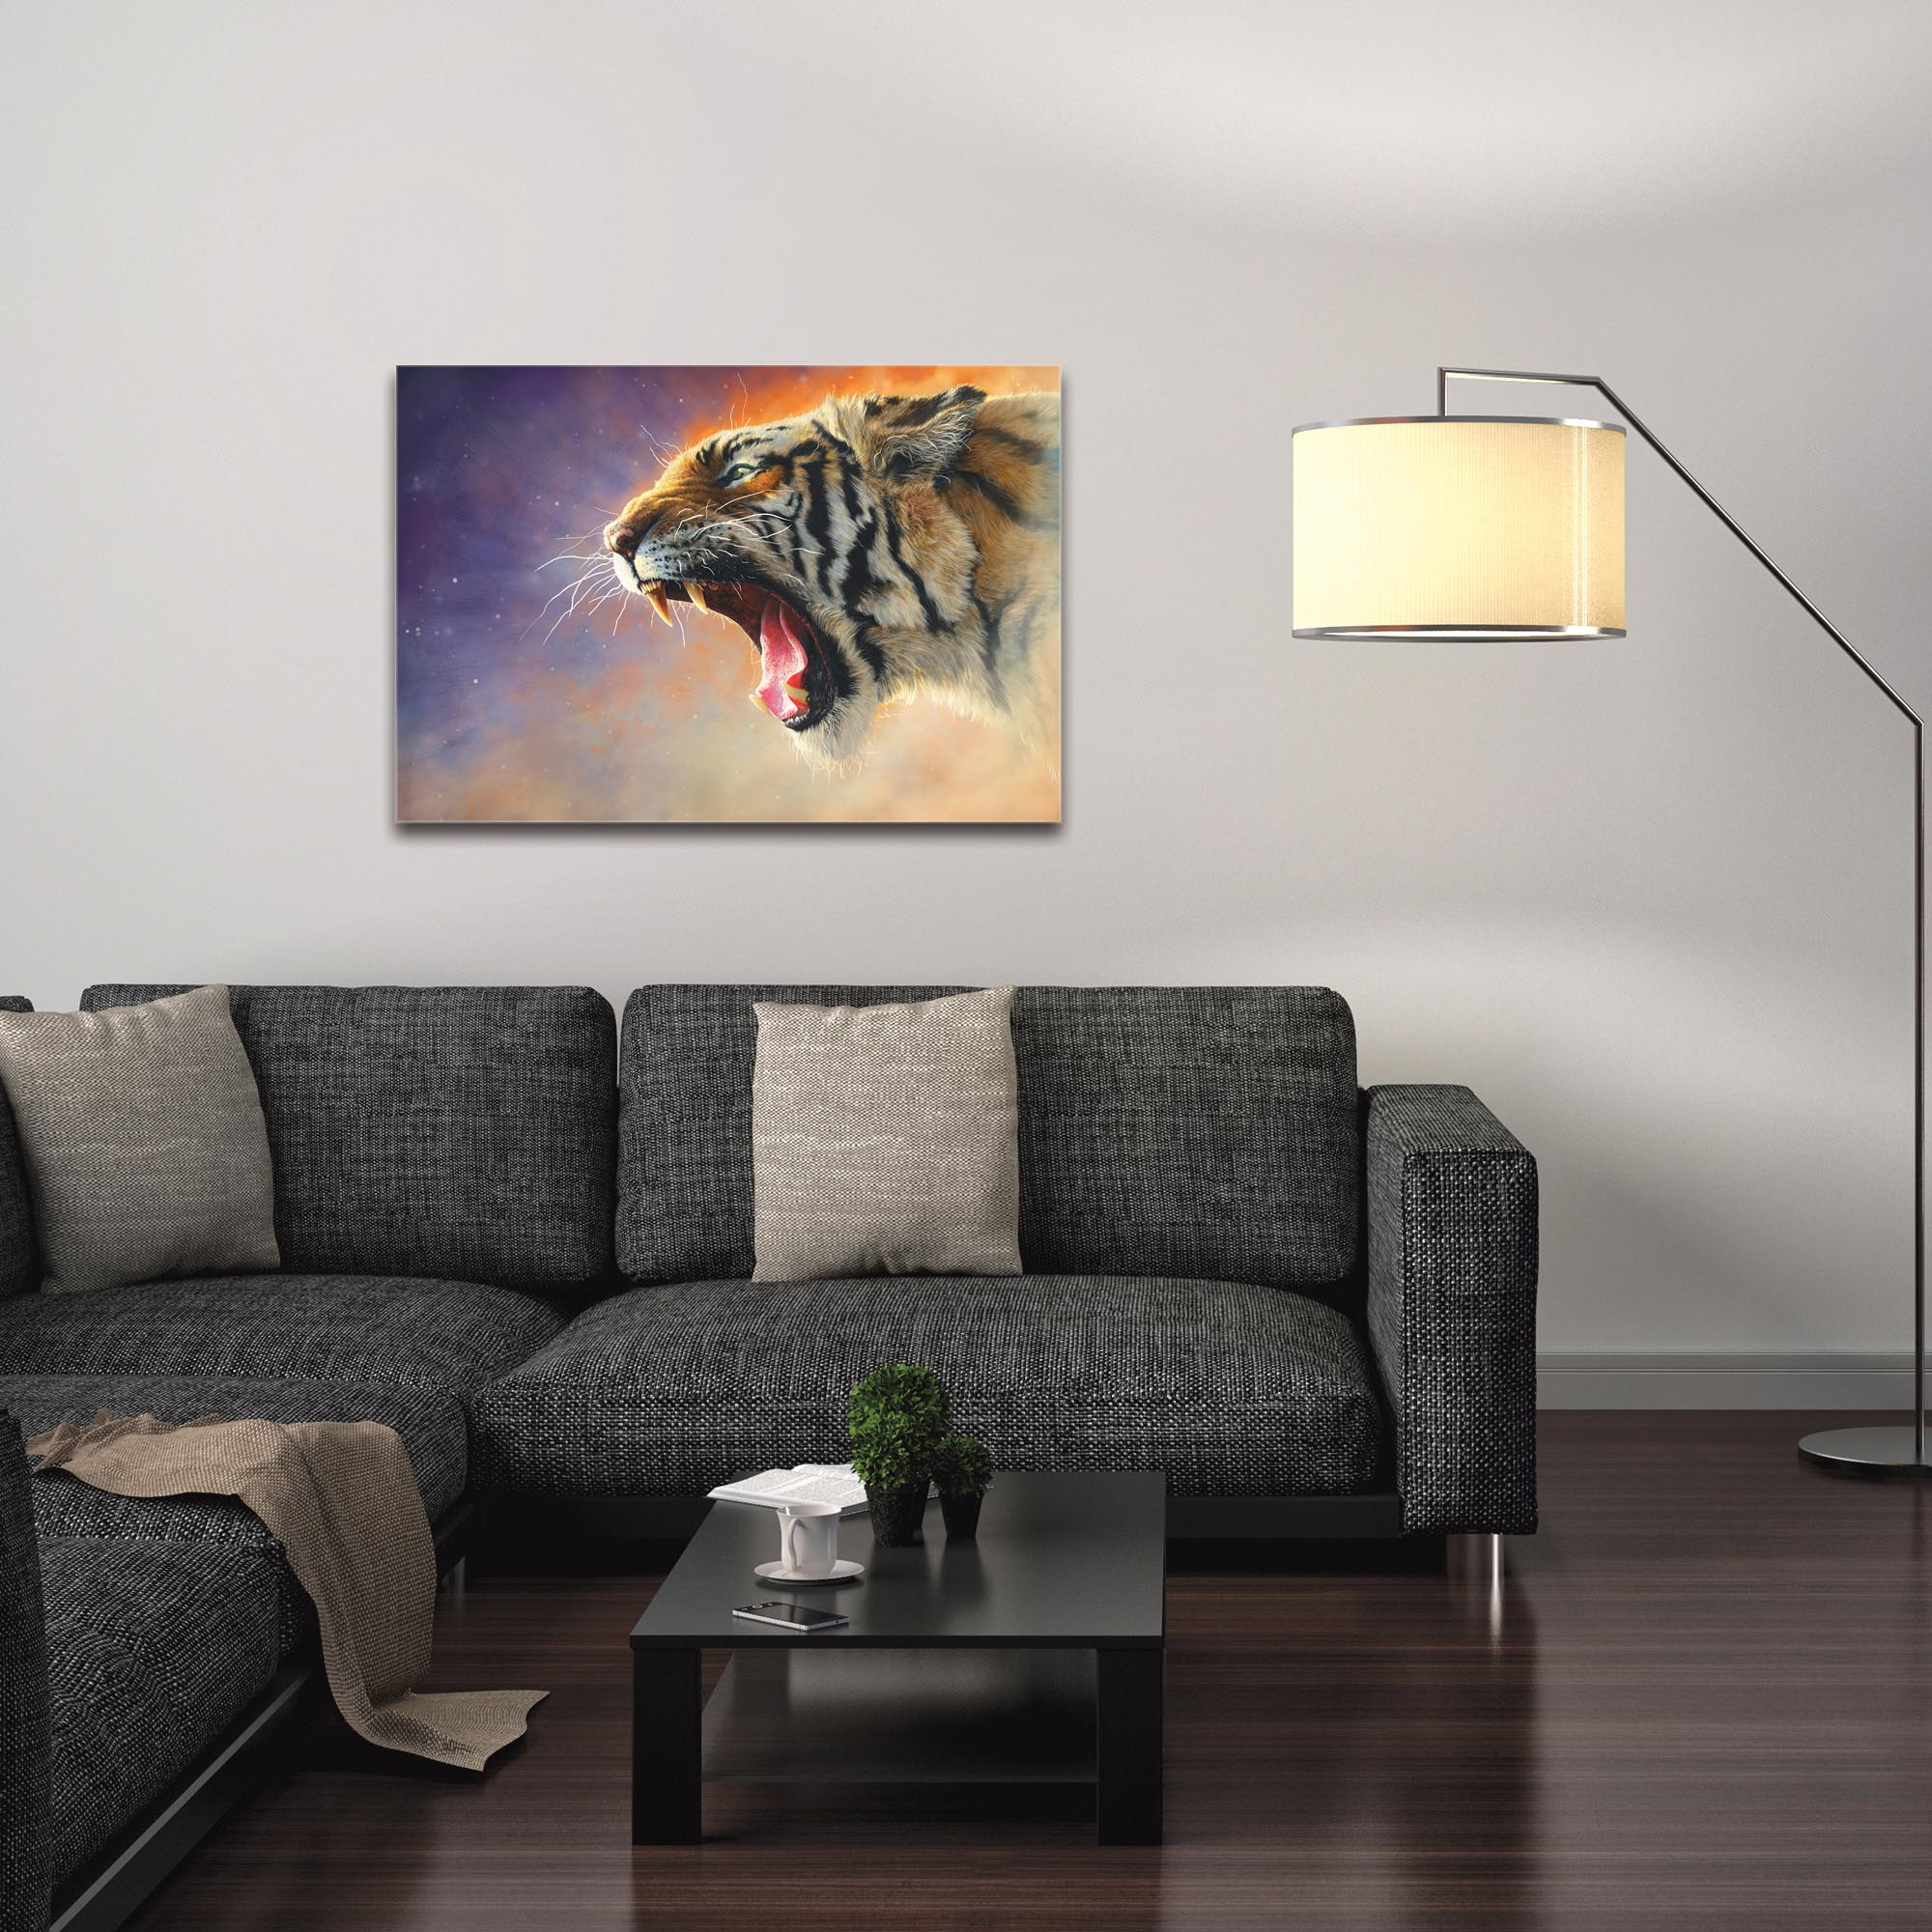 Expressionist Wall Art 'Fear Me' - Wildlife Decor on Metal or Plexiglass - Image 3